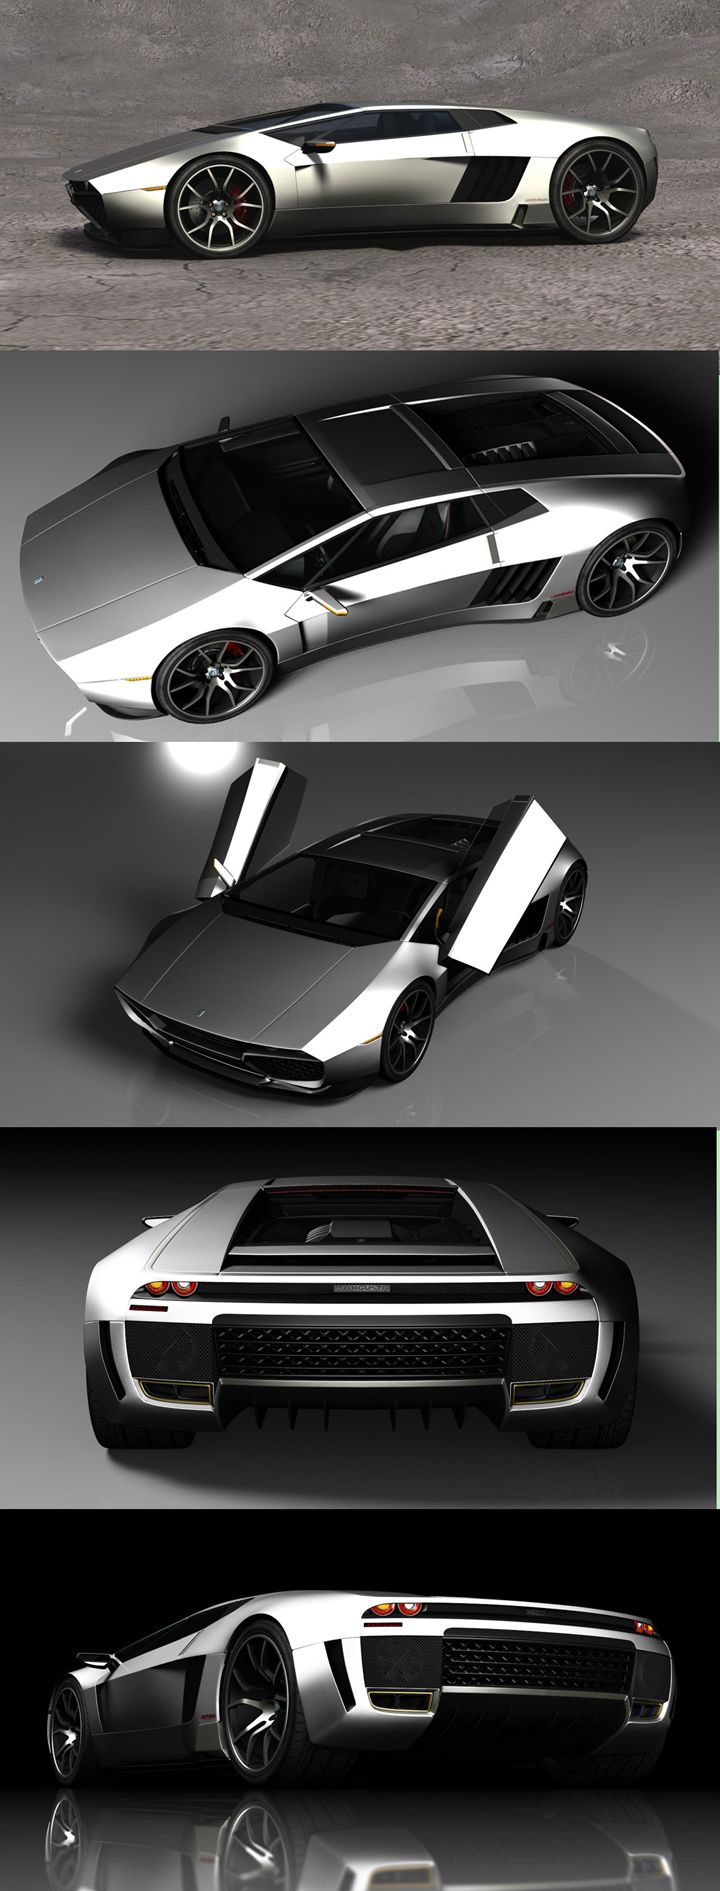 ♂ The Mangusta Legacy concept is a reincarnation of the classic De Tomaso Mang…